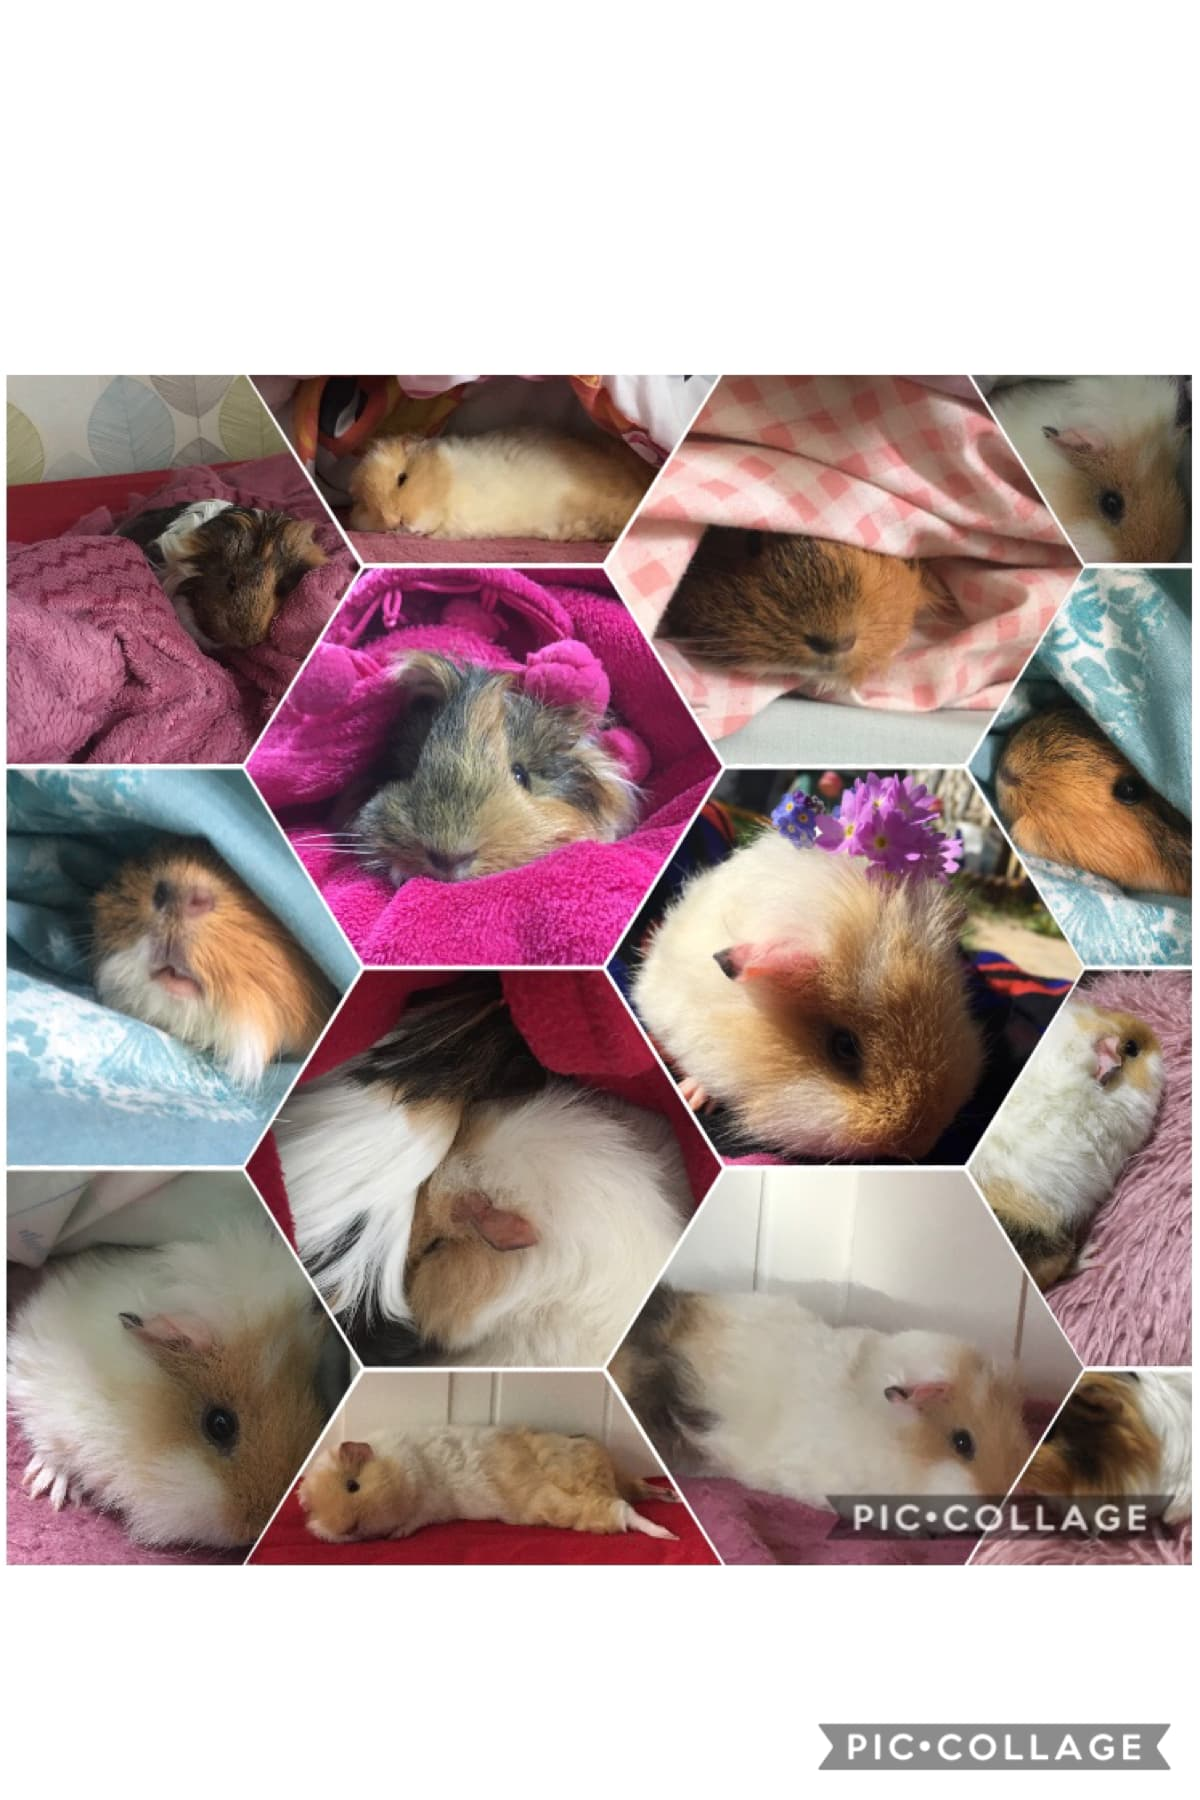 These are my favourite pictures of my guinea pigs Stay safe everyone ❤️❤️❤️